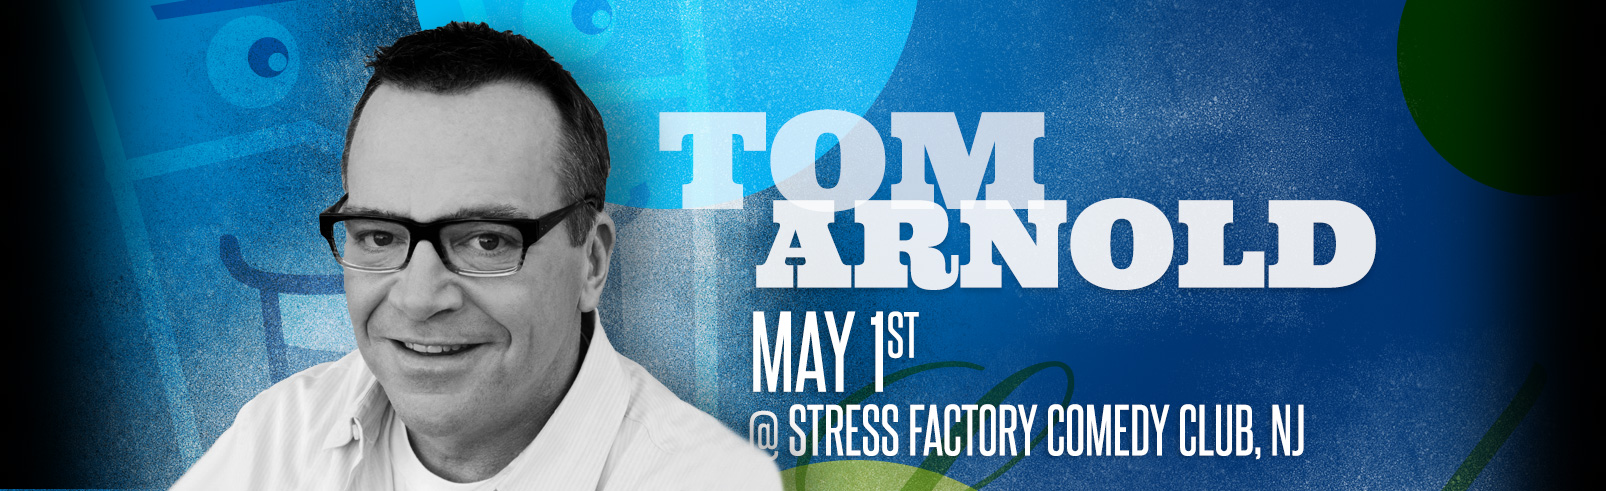 Tom Arnold @ Stress Factory Comedy Club